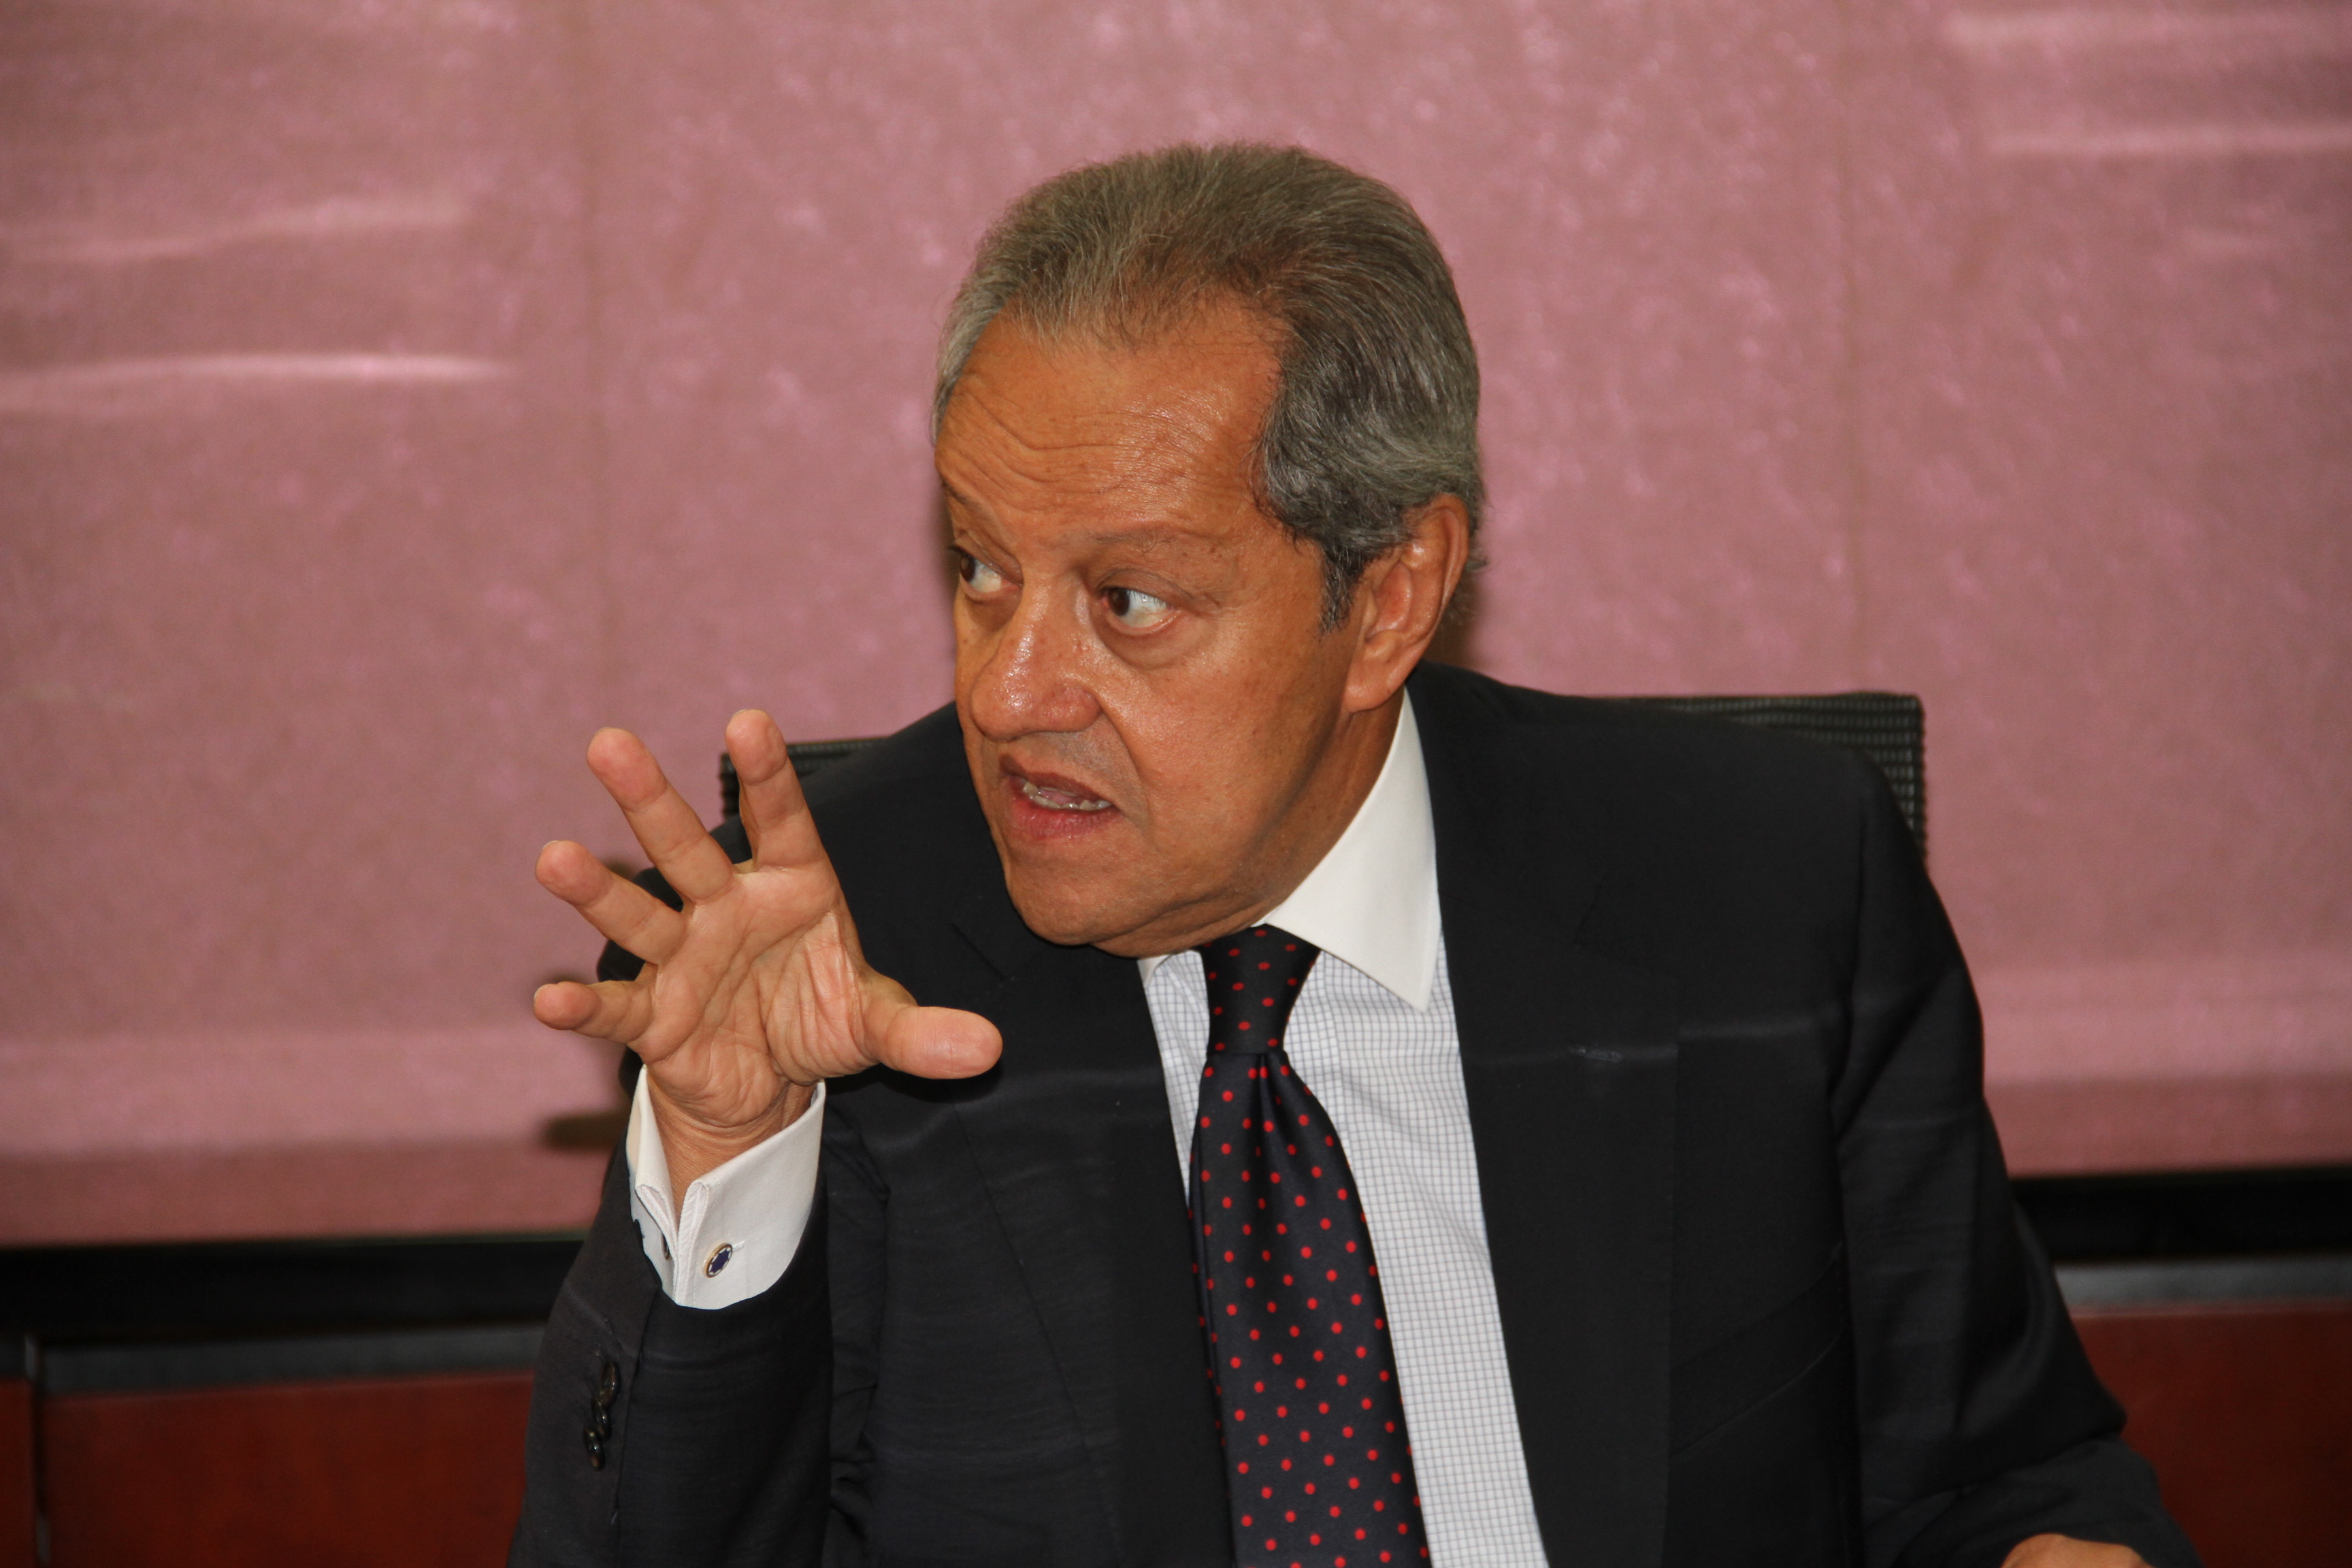 here are also amendments in the Penal Code related to the criminal responsibility of the investor in the times of violations, Abdel Nour said  (DNE File Photo)